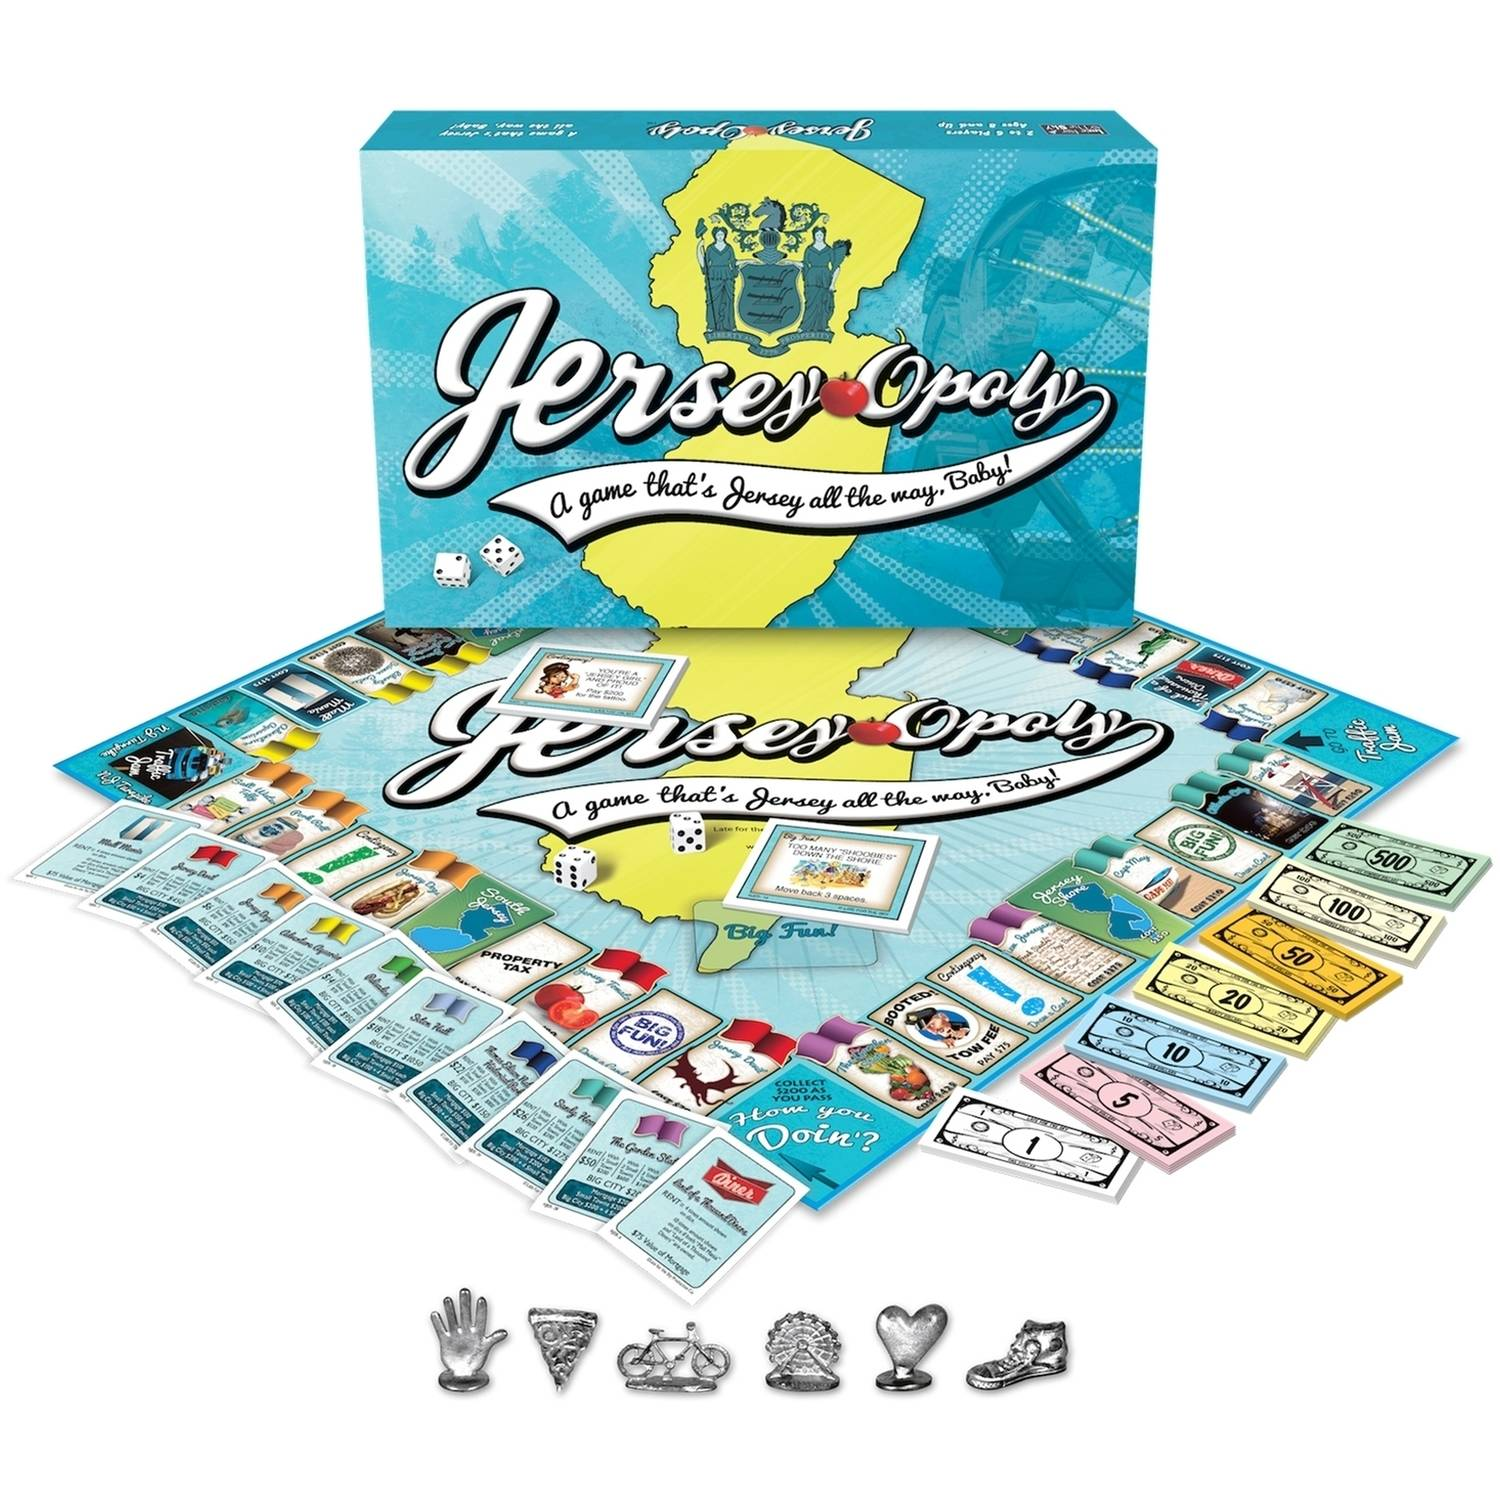 Late for the Sky Jersey-opoly Game